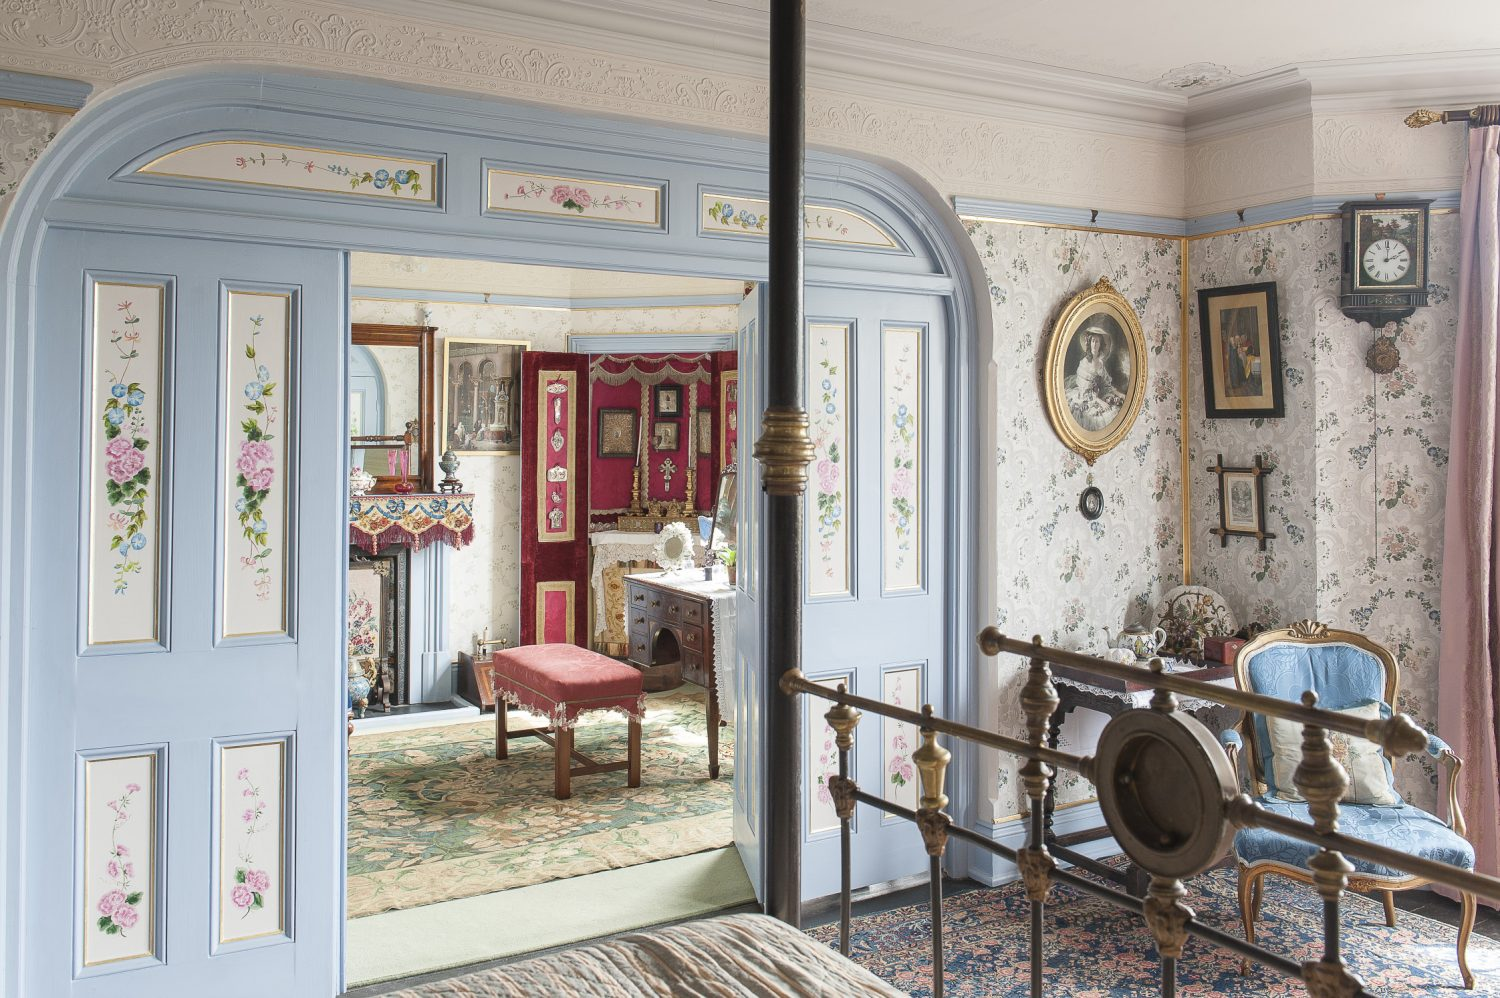 Mr Parry's Room features a magnificent four poster bed, lined with the prettiest chintz, from which you could sit and look out at a particularly special sea view